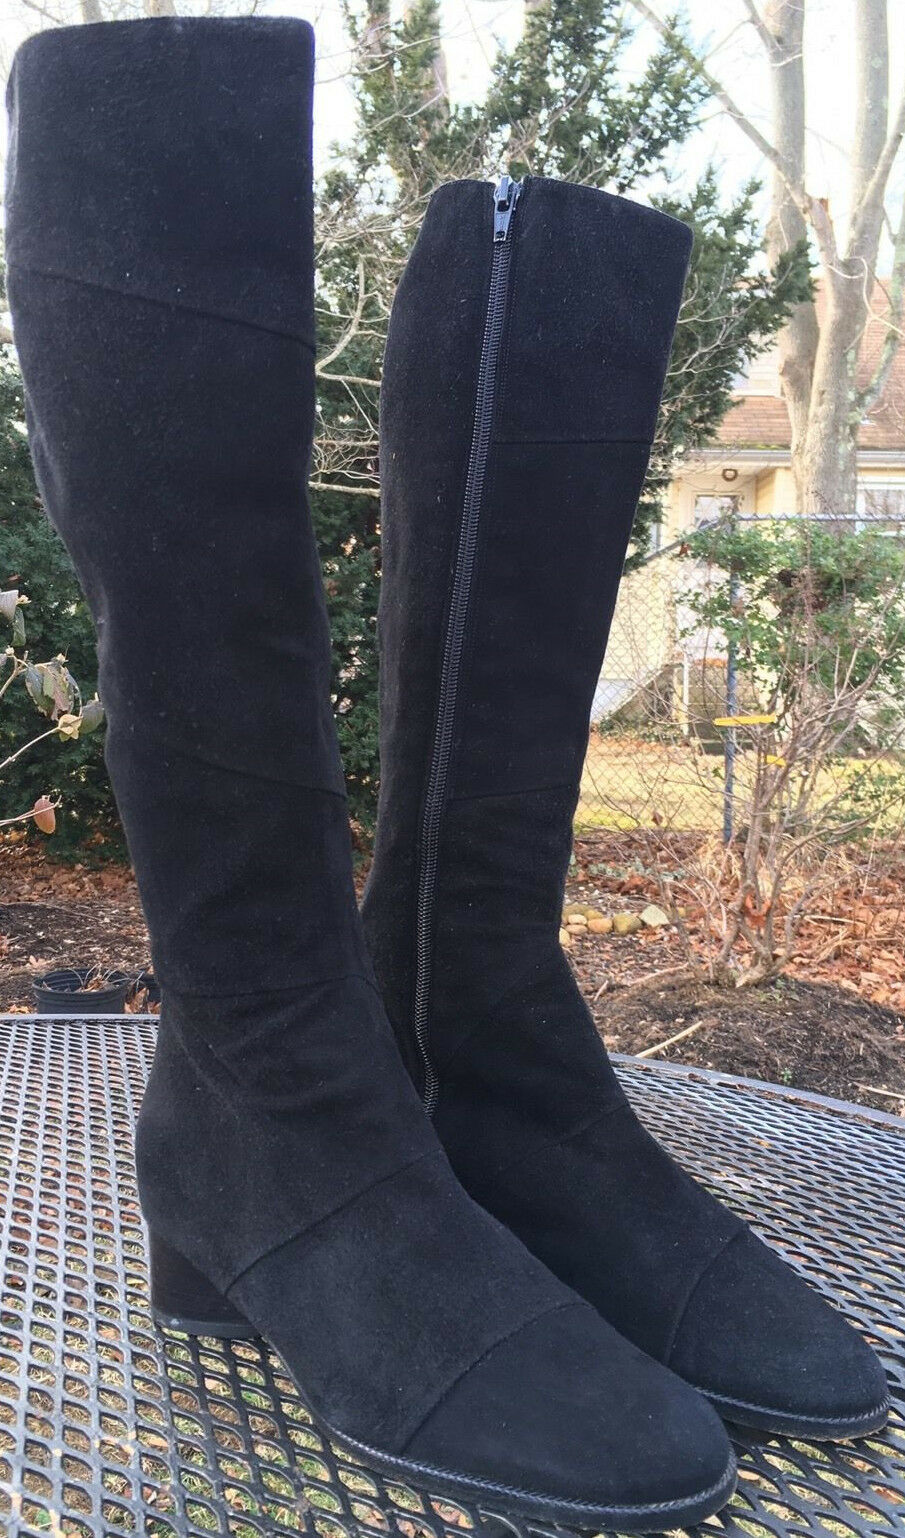 World Studio Black Suede Knee High Boots Made In . Size 6 M